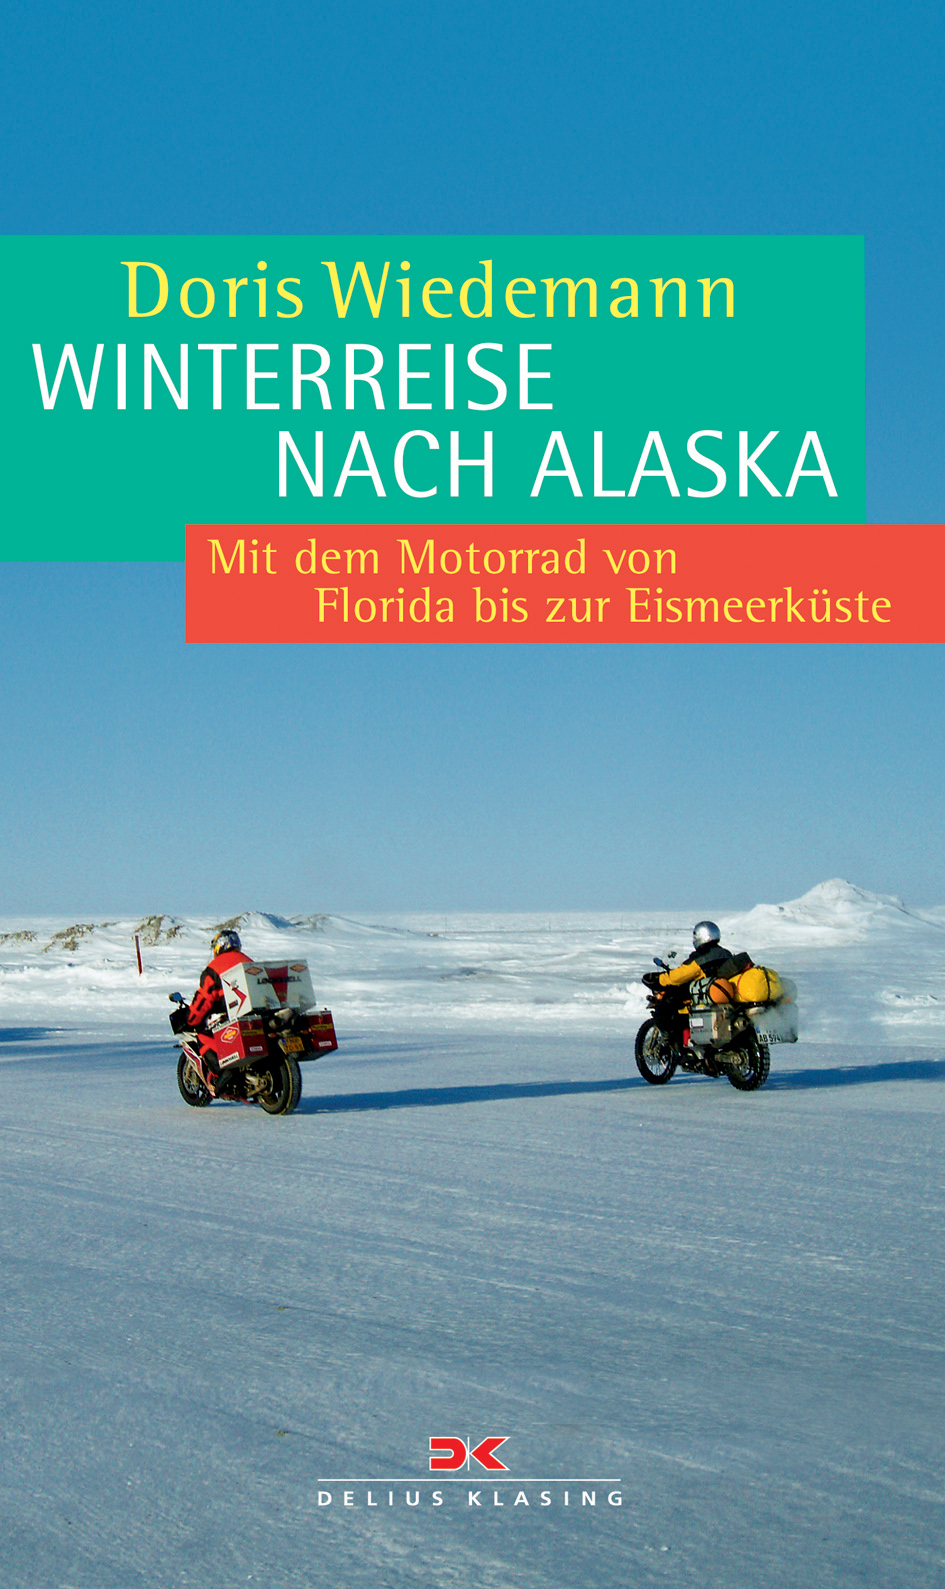 Book-Cover-Alaska_in_Winter.jpg